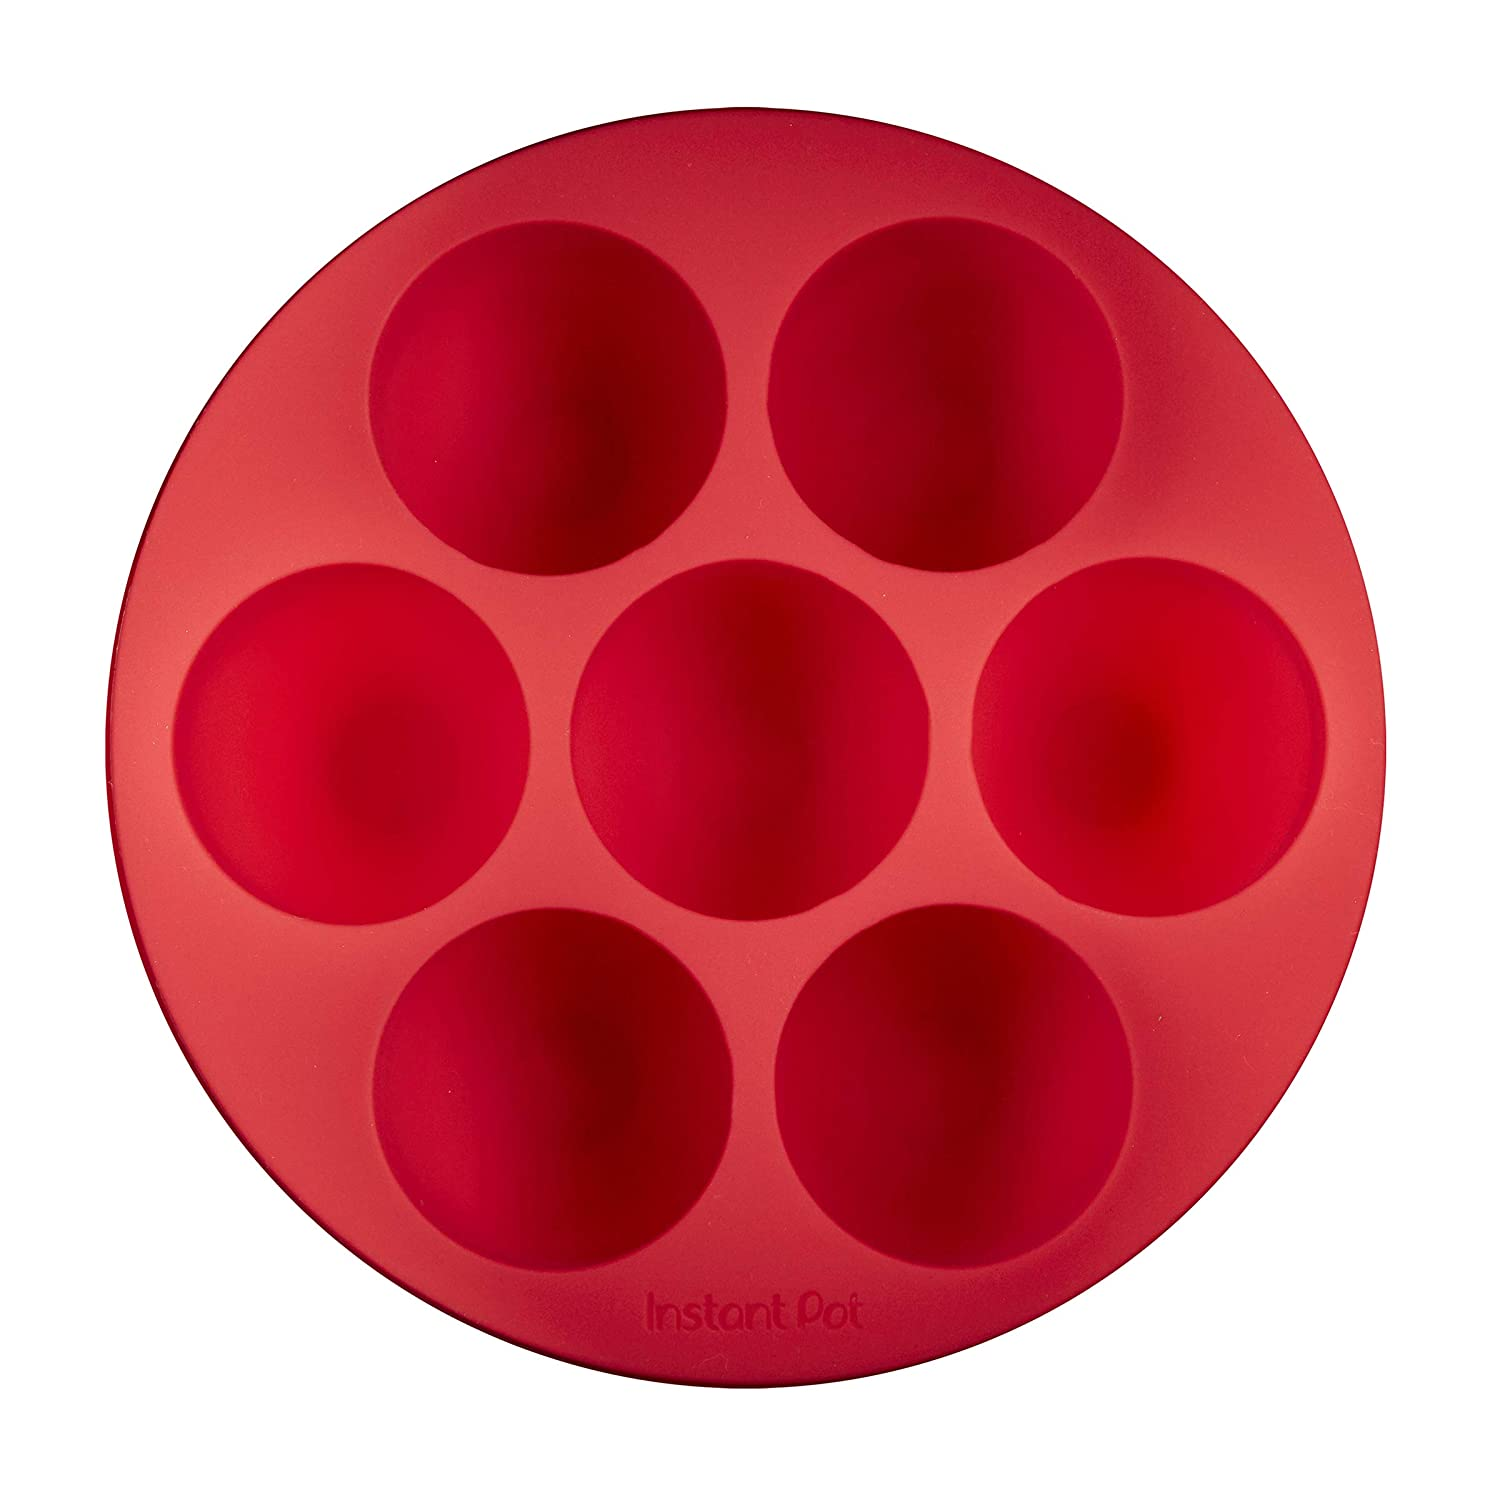 Instant Pot 5252242 Official Silicone Egg Bites Pan with Lid, Compatible with 6-quart and 8-quart cookers, Red